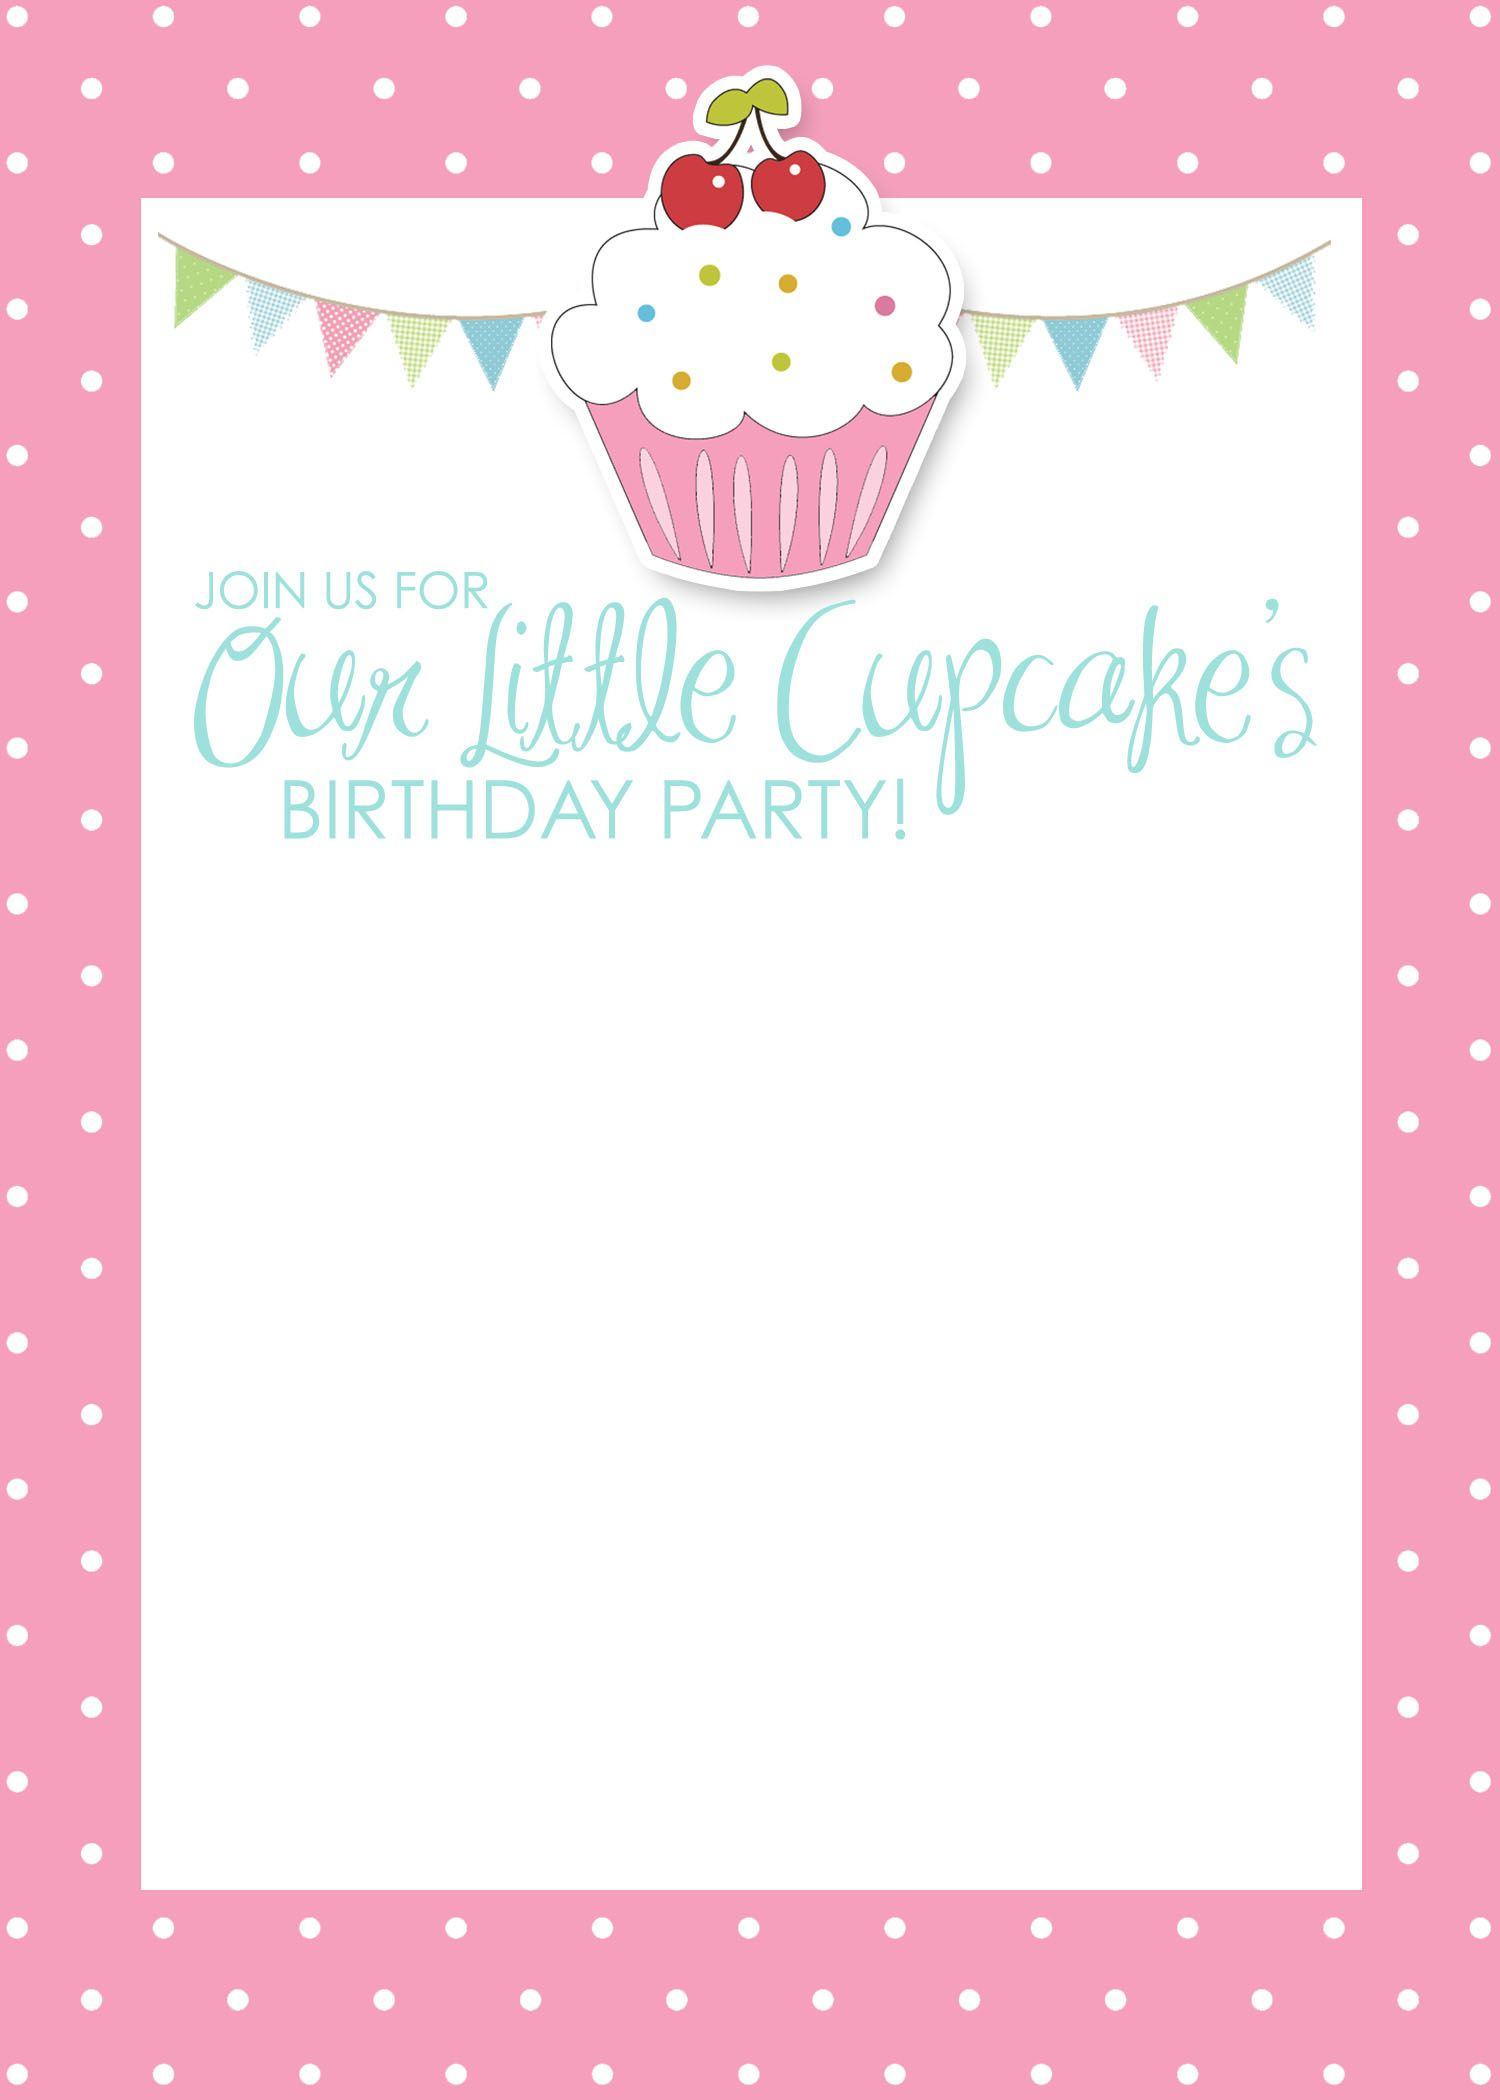 Cupcake Birthday Party With Free Printables | Parties W/ Pizzaz - Free Printable Polka Dot Birthday Party Invitations